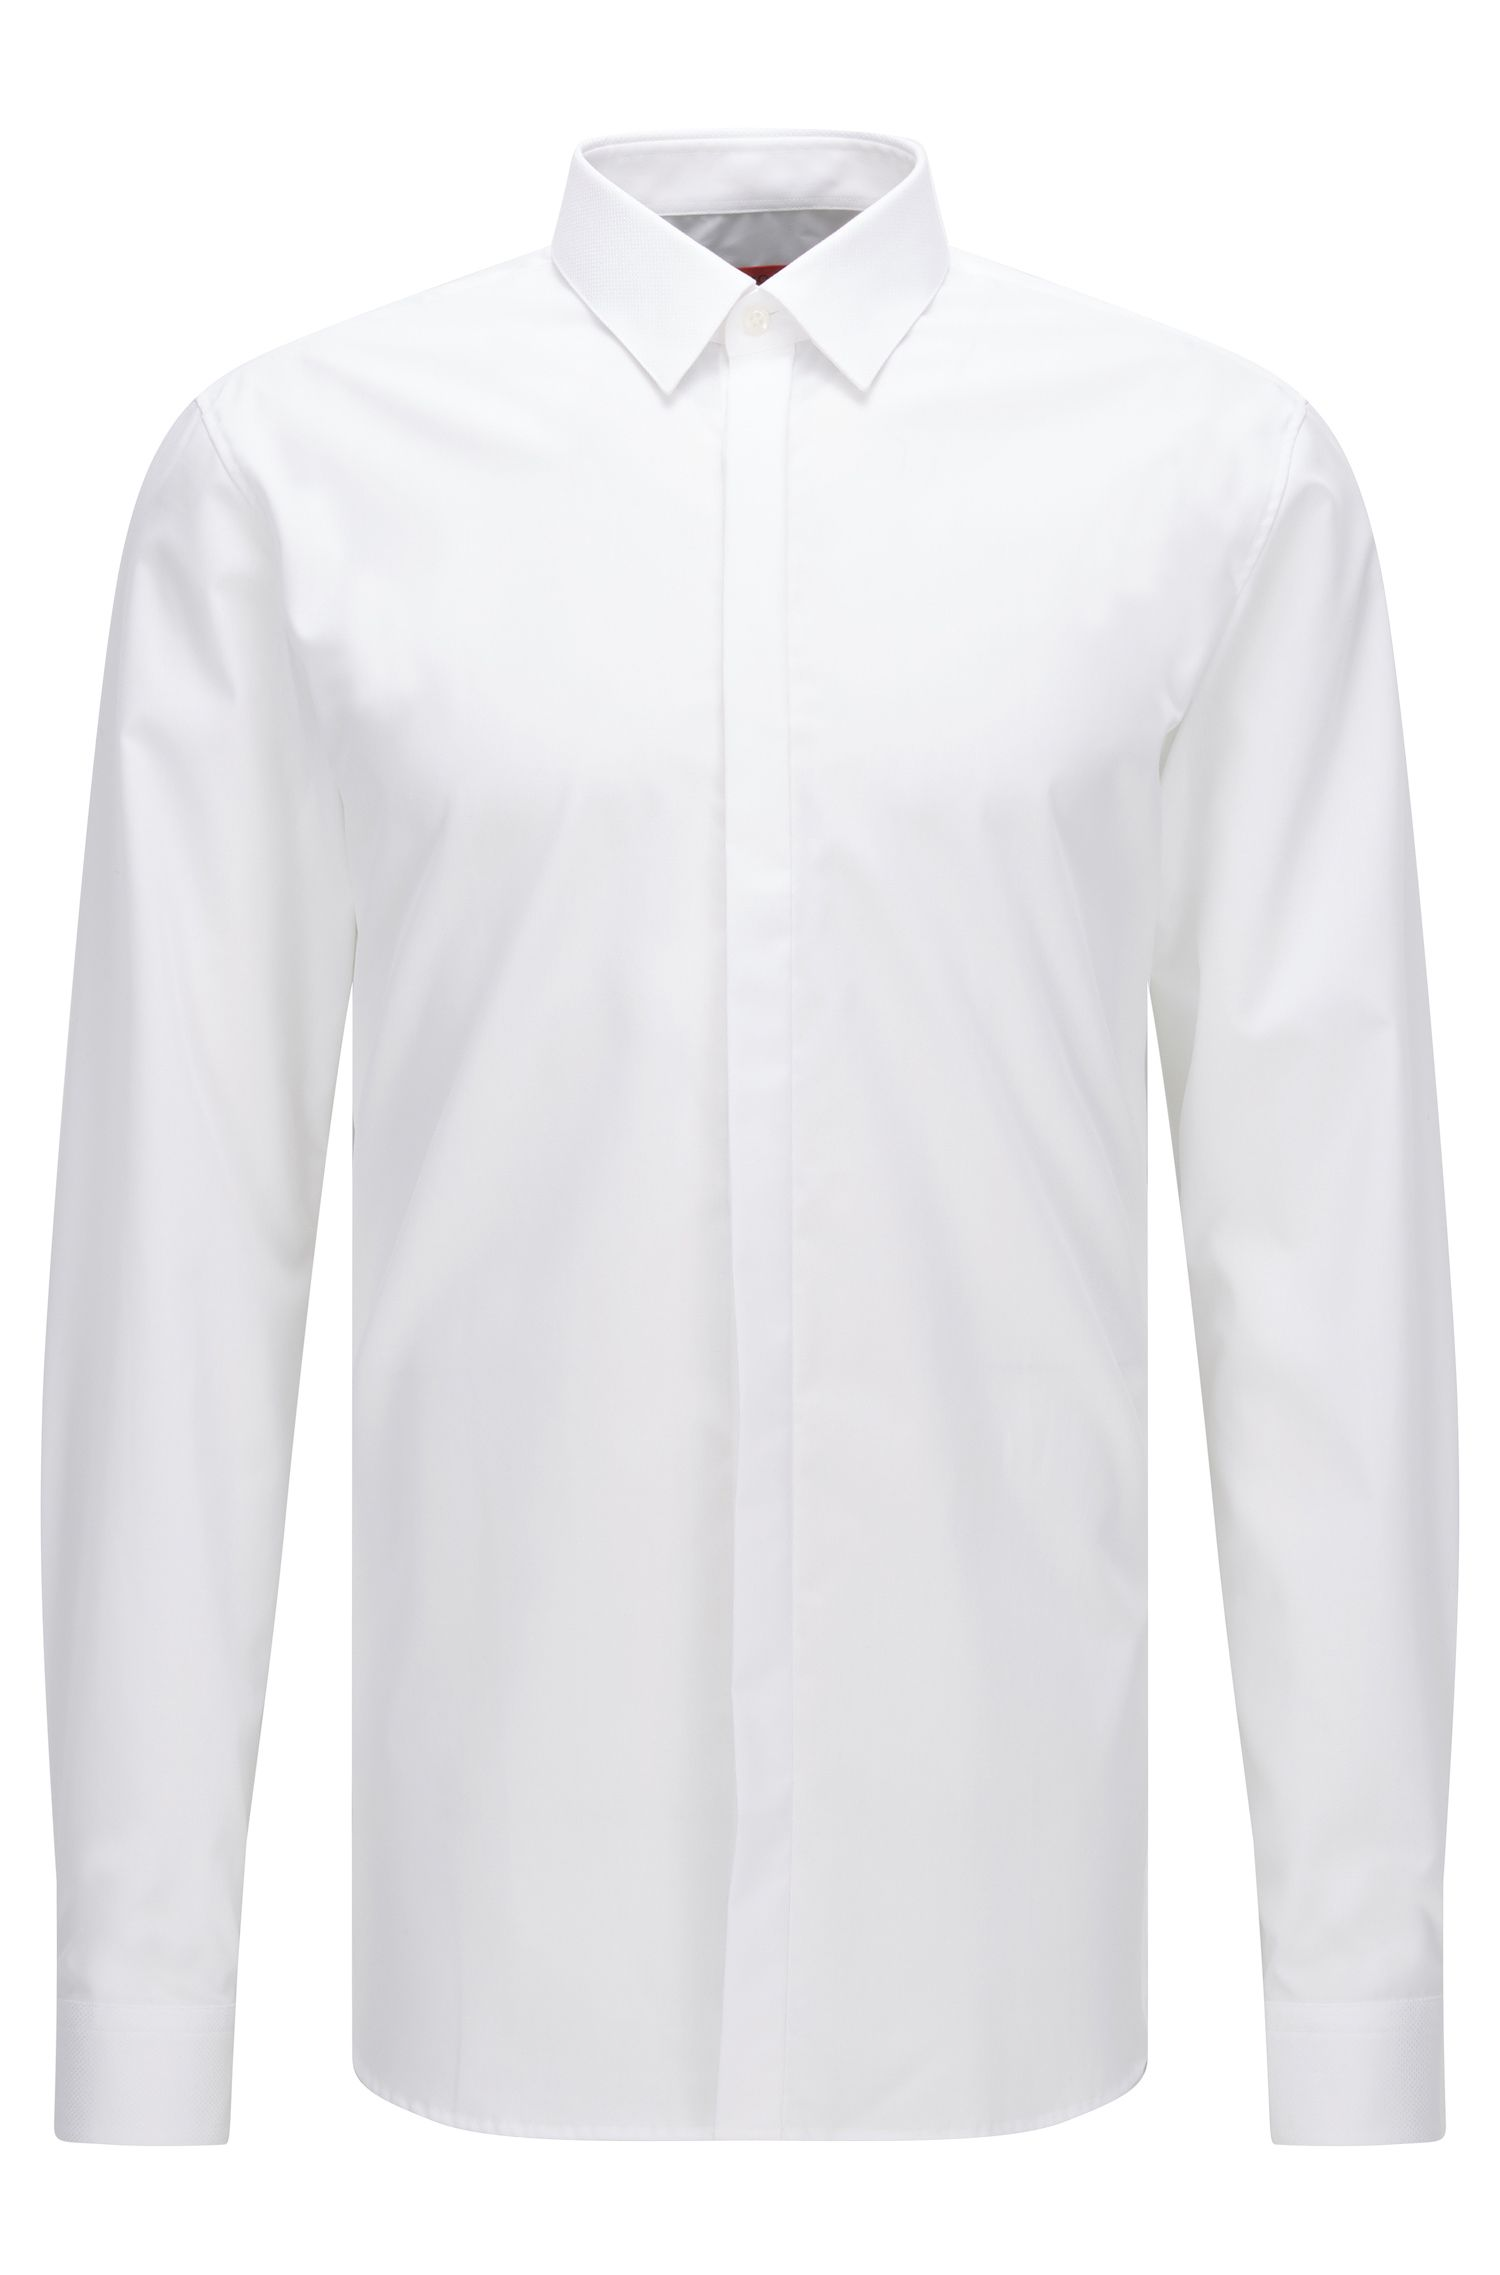 Extra-slim-fit shirt in pure cotton